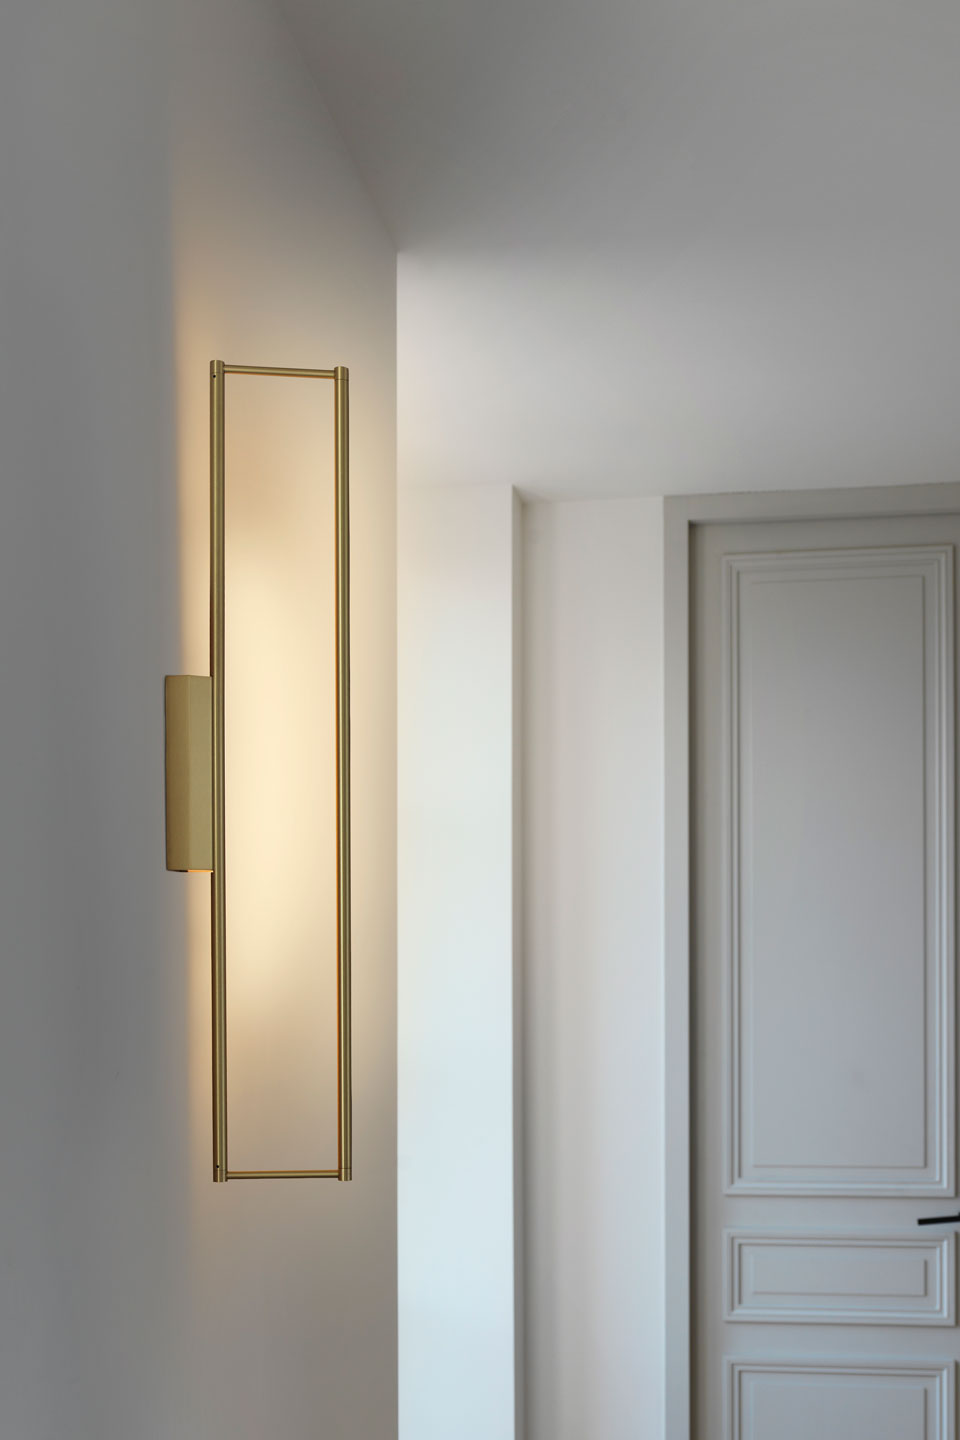 Design Wall Light Several Sizes Br S Picture Vertical Or Horizontal